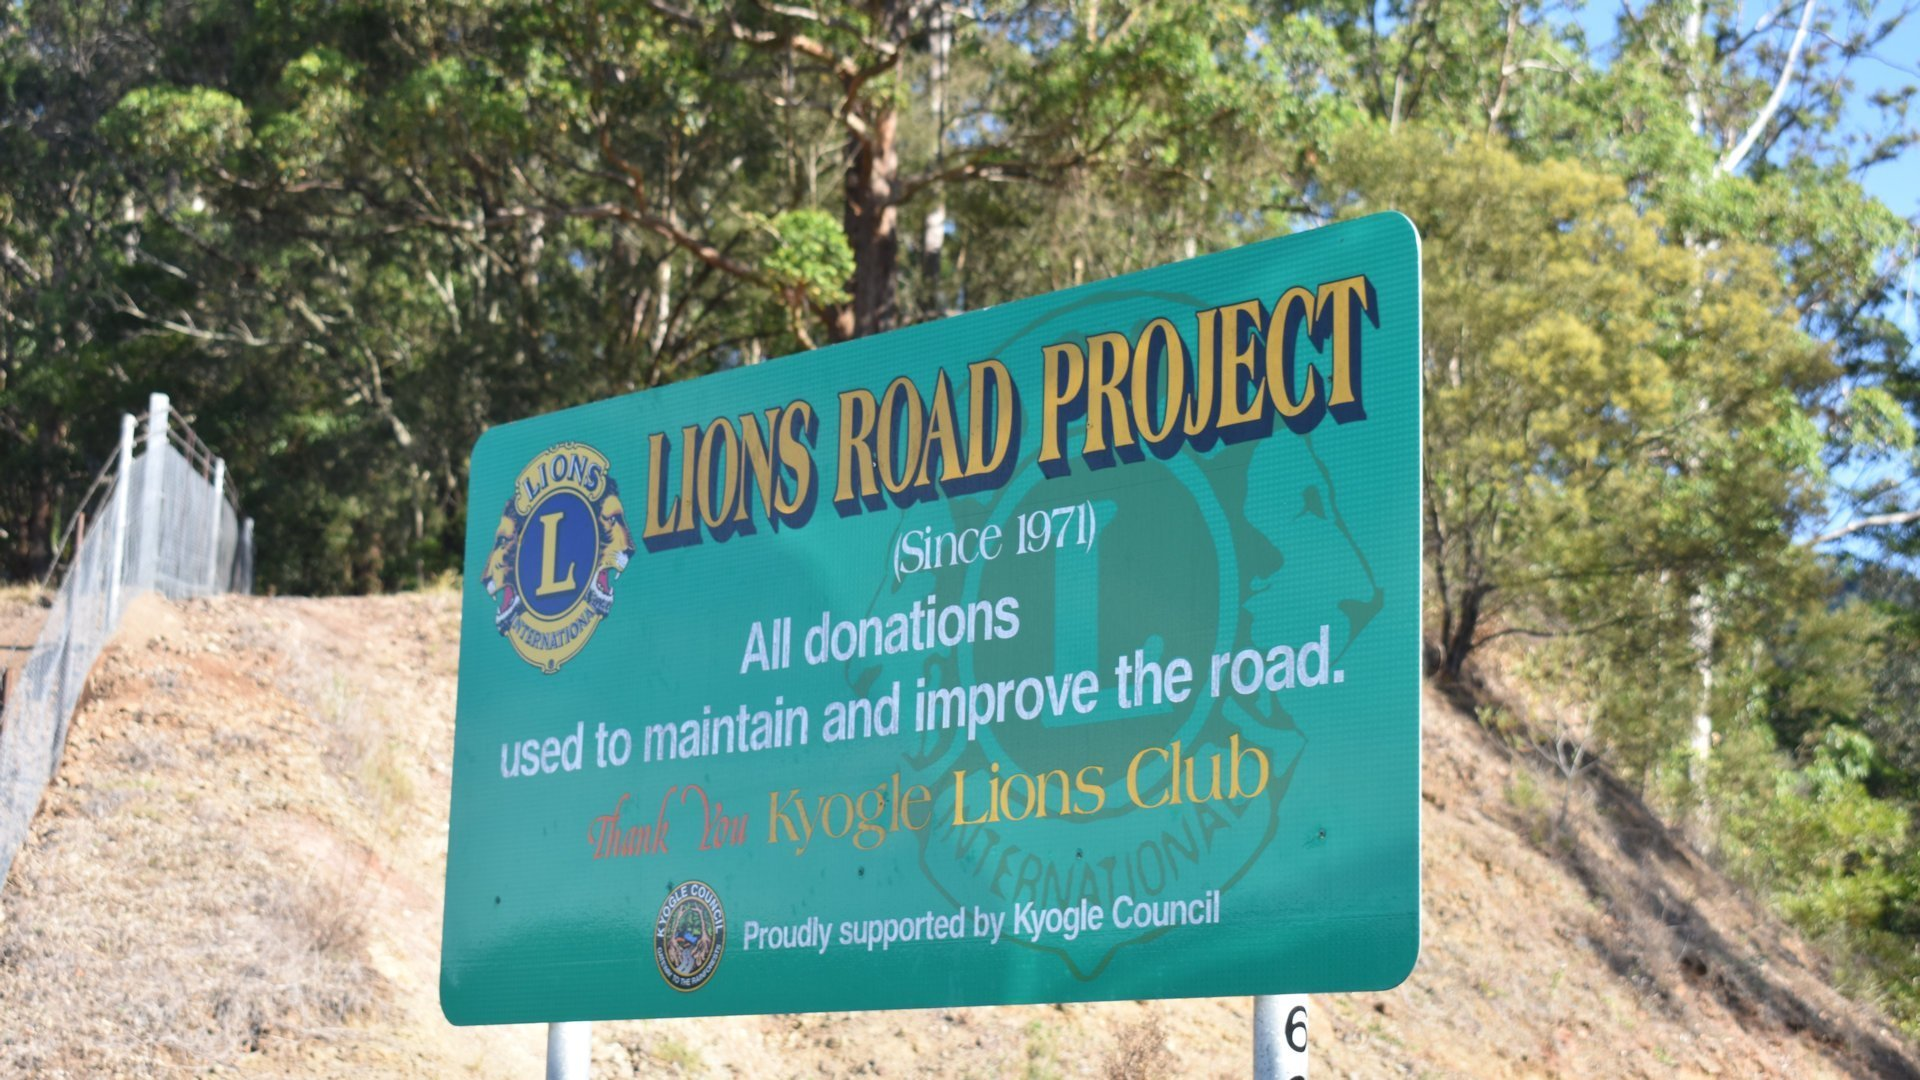 Lions Road Project, Lions Road at the New South Wales and Queensland Border